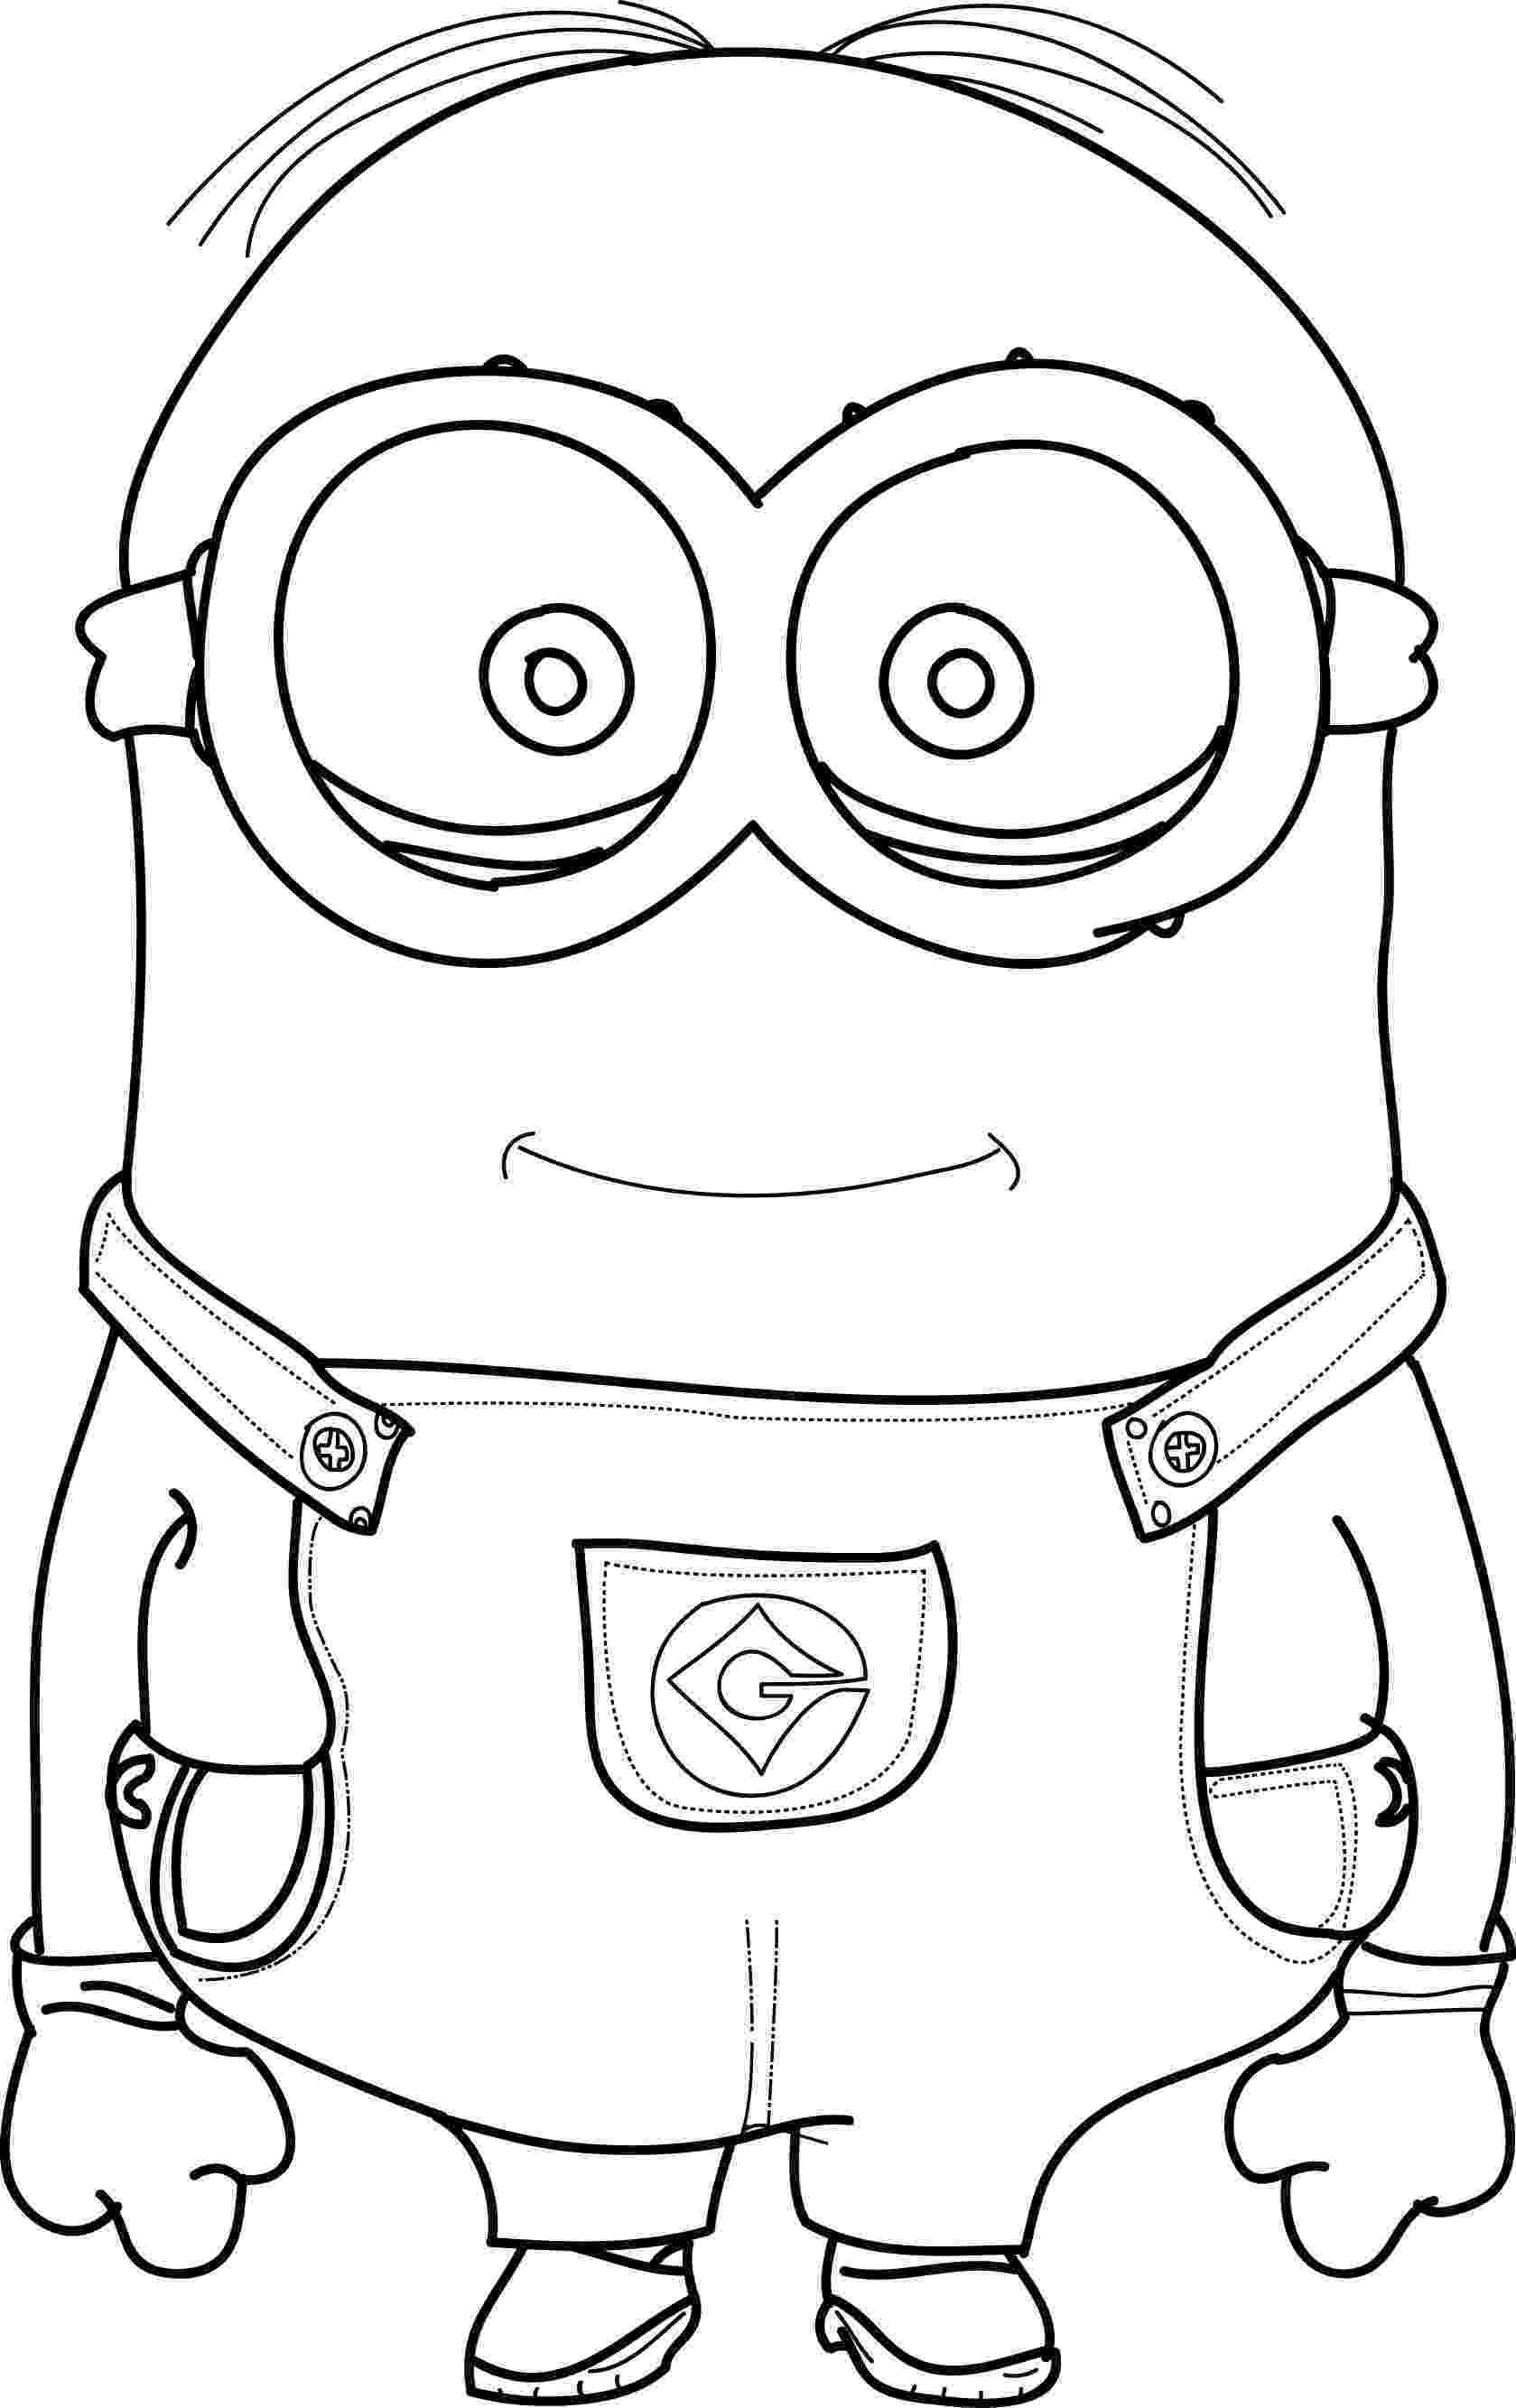 minion coloring minion coloring pages best coloring pages for kids minion coloring 1 7